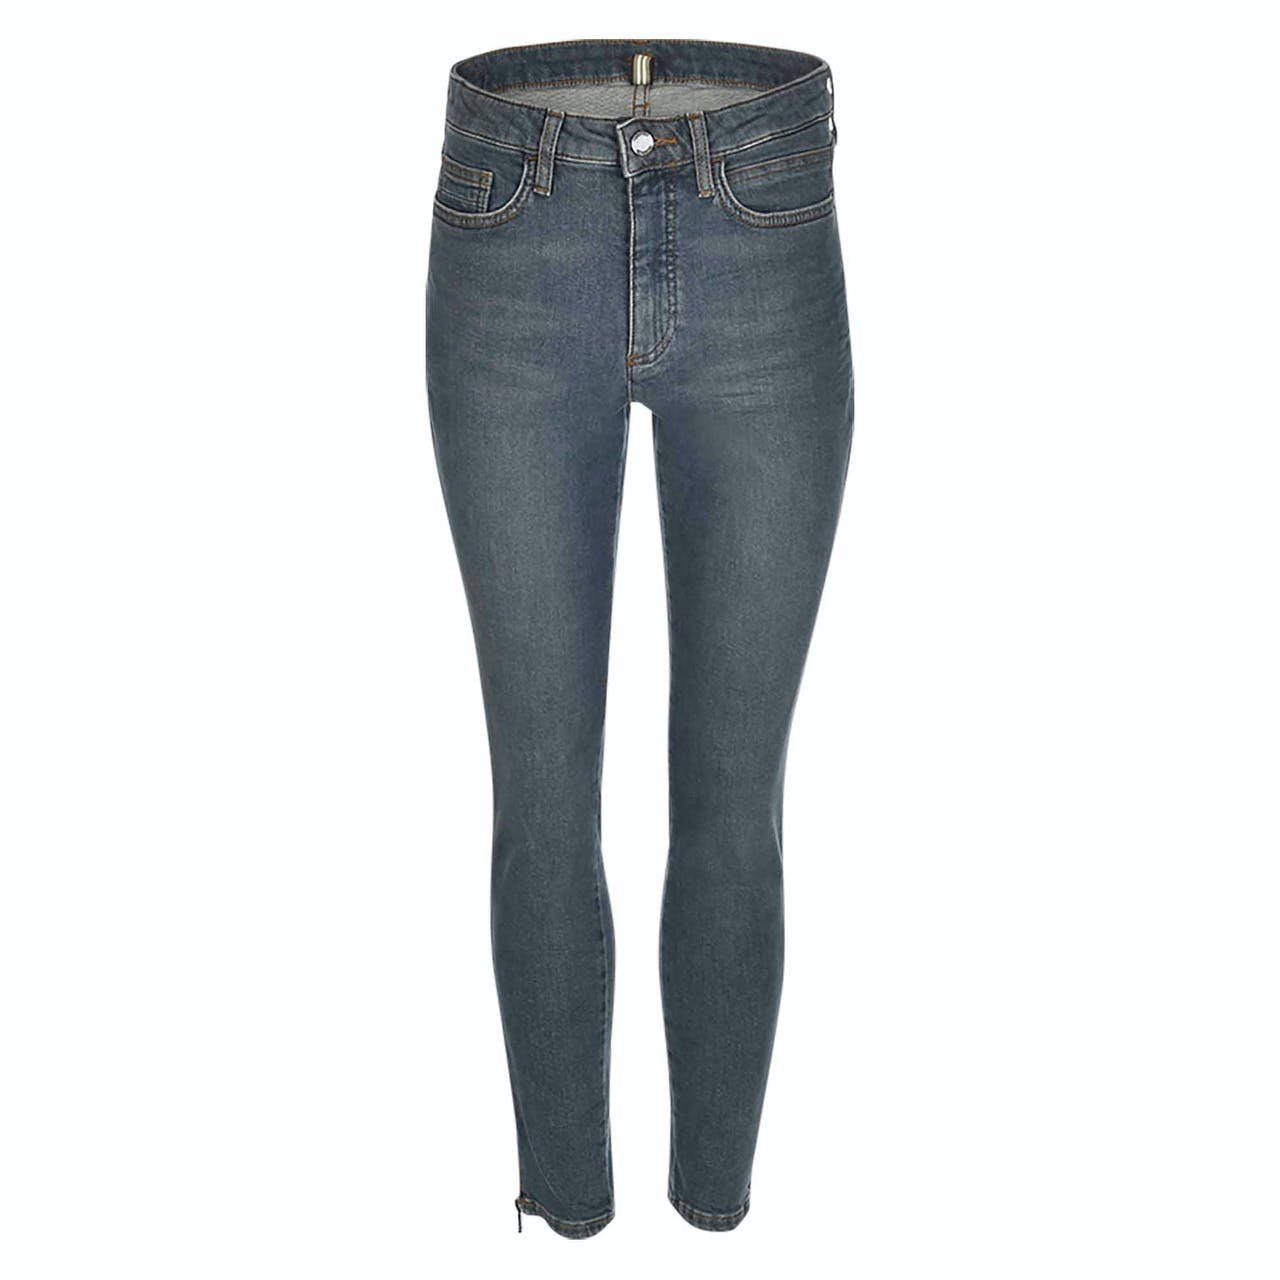 Jeans - Skinny Fit - Mid Rise